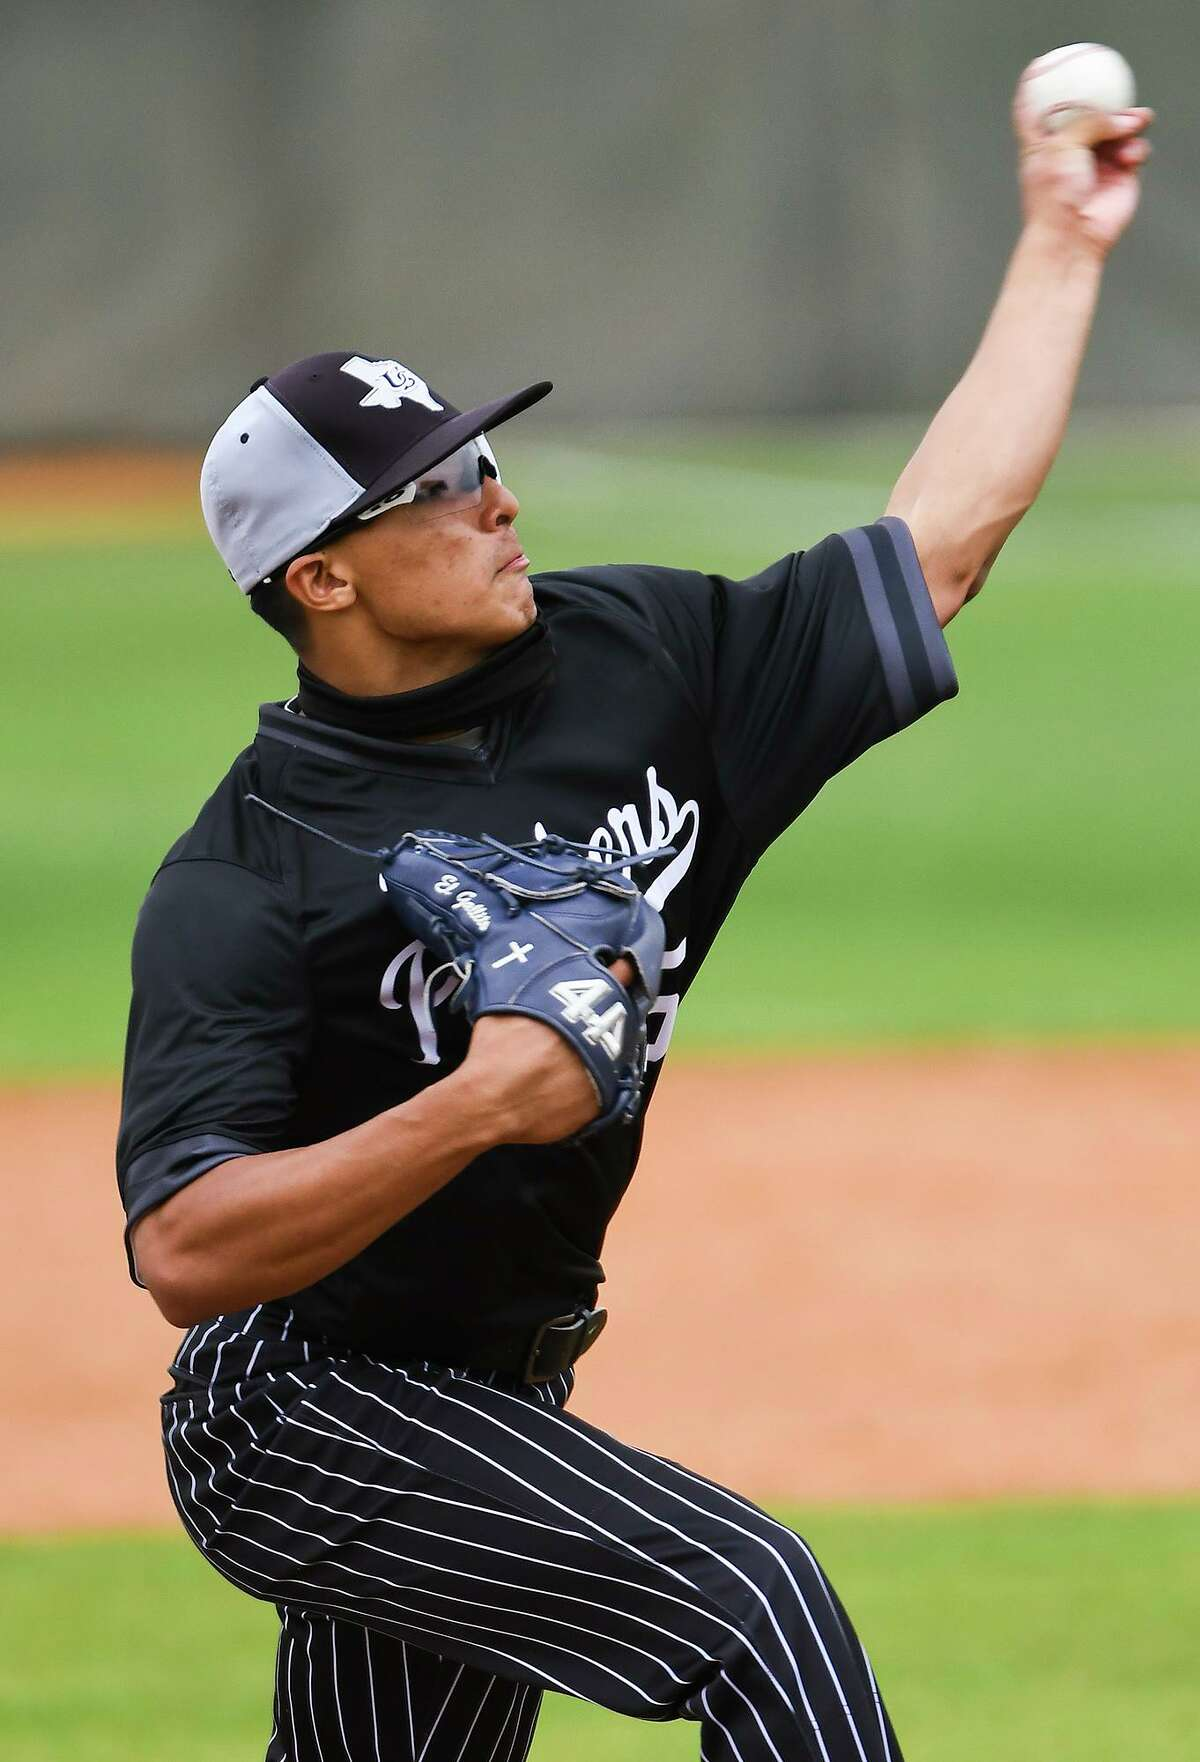 United South senior pitcher Juan Milera had surgery for skin cancer Thursday and is hoping to return to the team during the postseason.